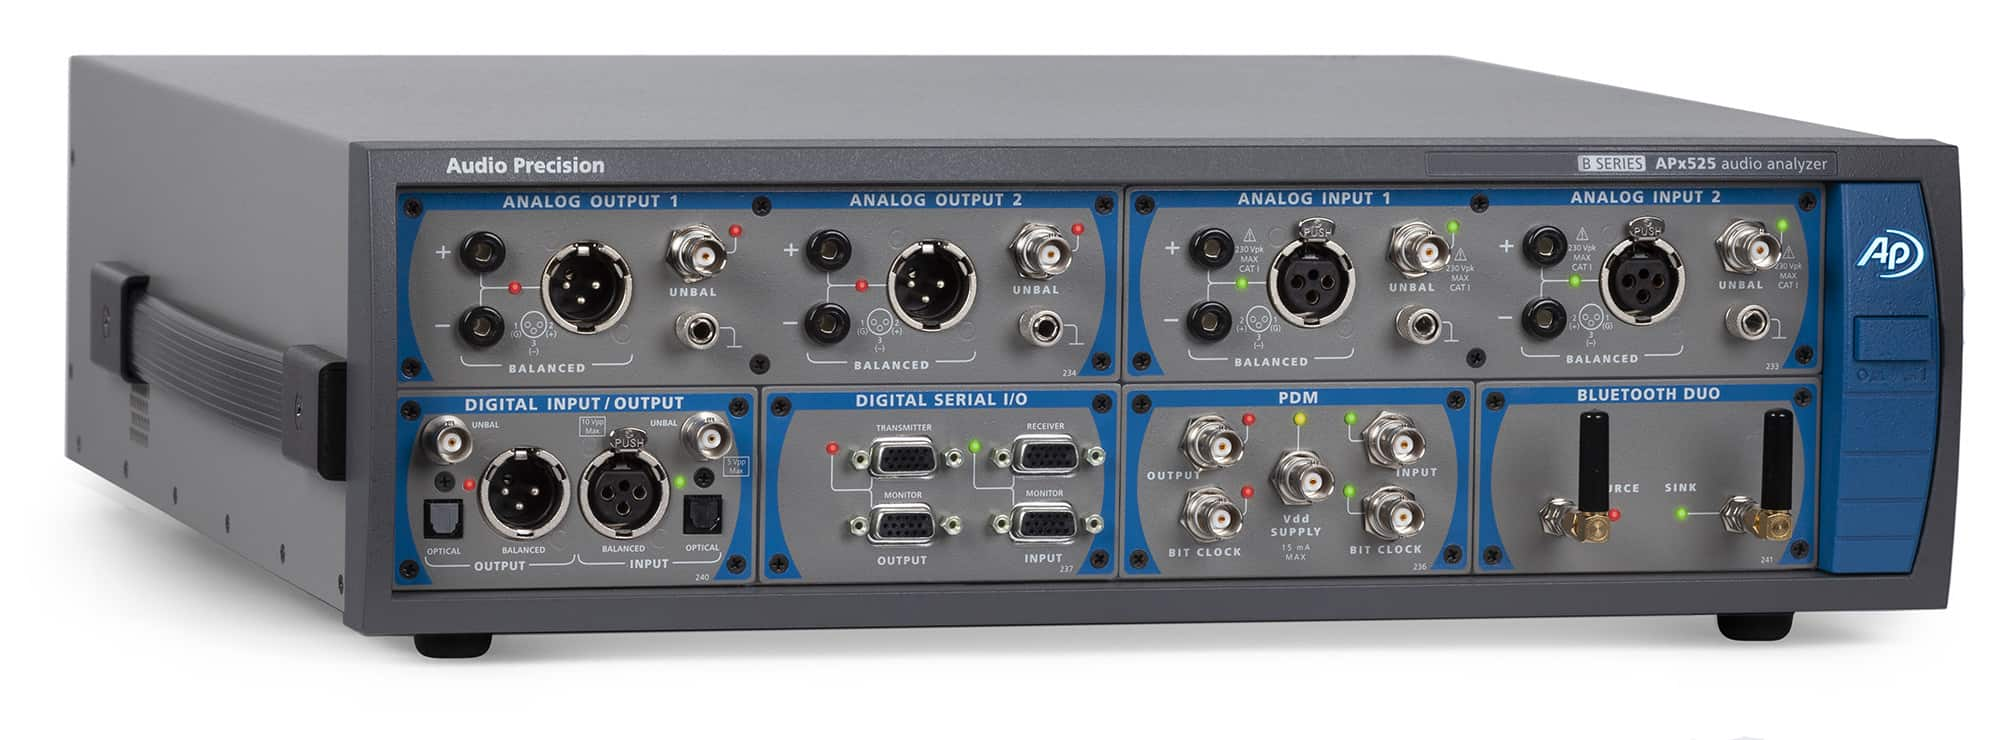 APx525 B Series Audio Analyzer with Digital Serial, PDM and Bluetooth Modules Installed